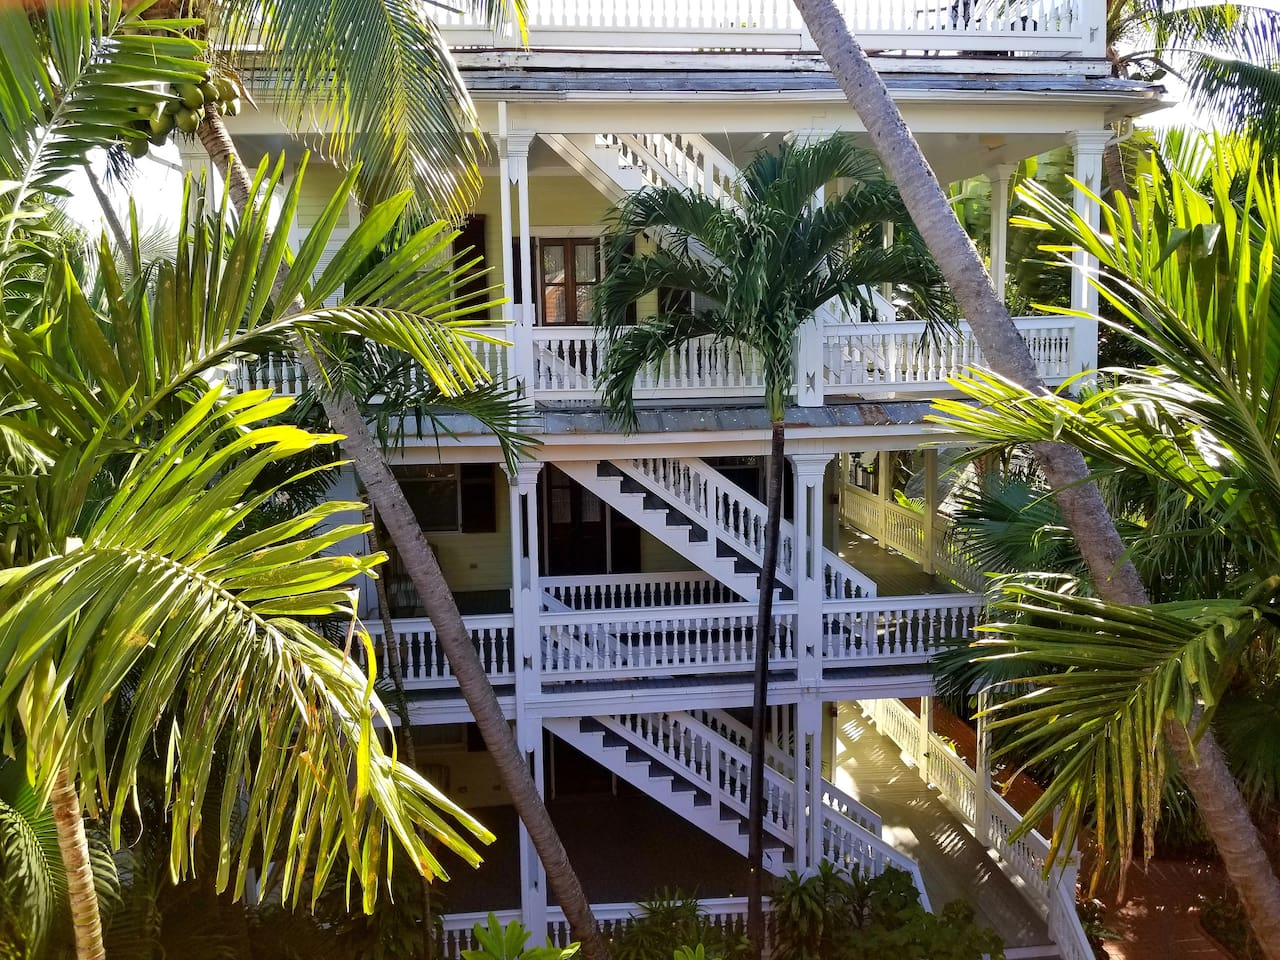 The Island Suite is part of a historic Key West property built around 1889. Suite #16 is located on the first floor at the rear of the 411 William Street building.